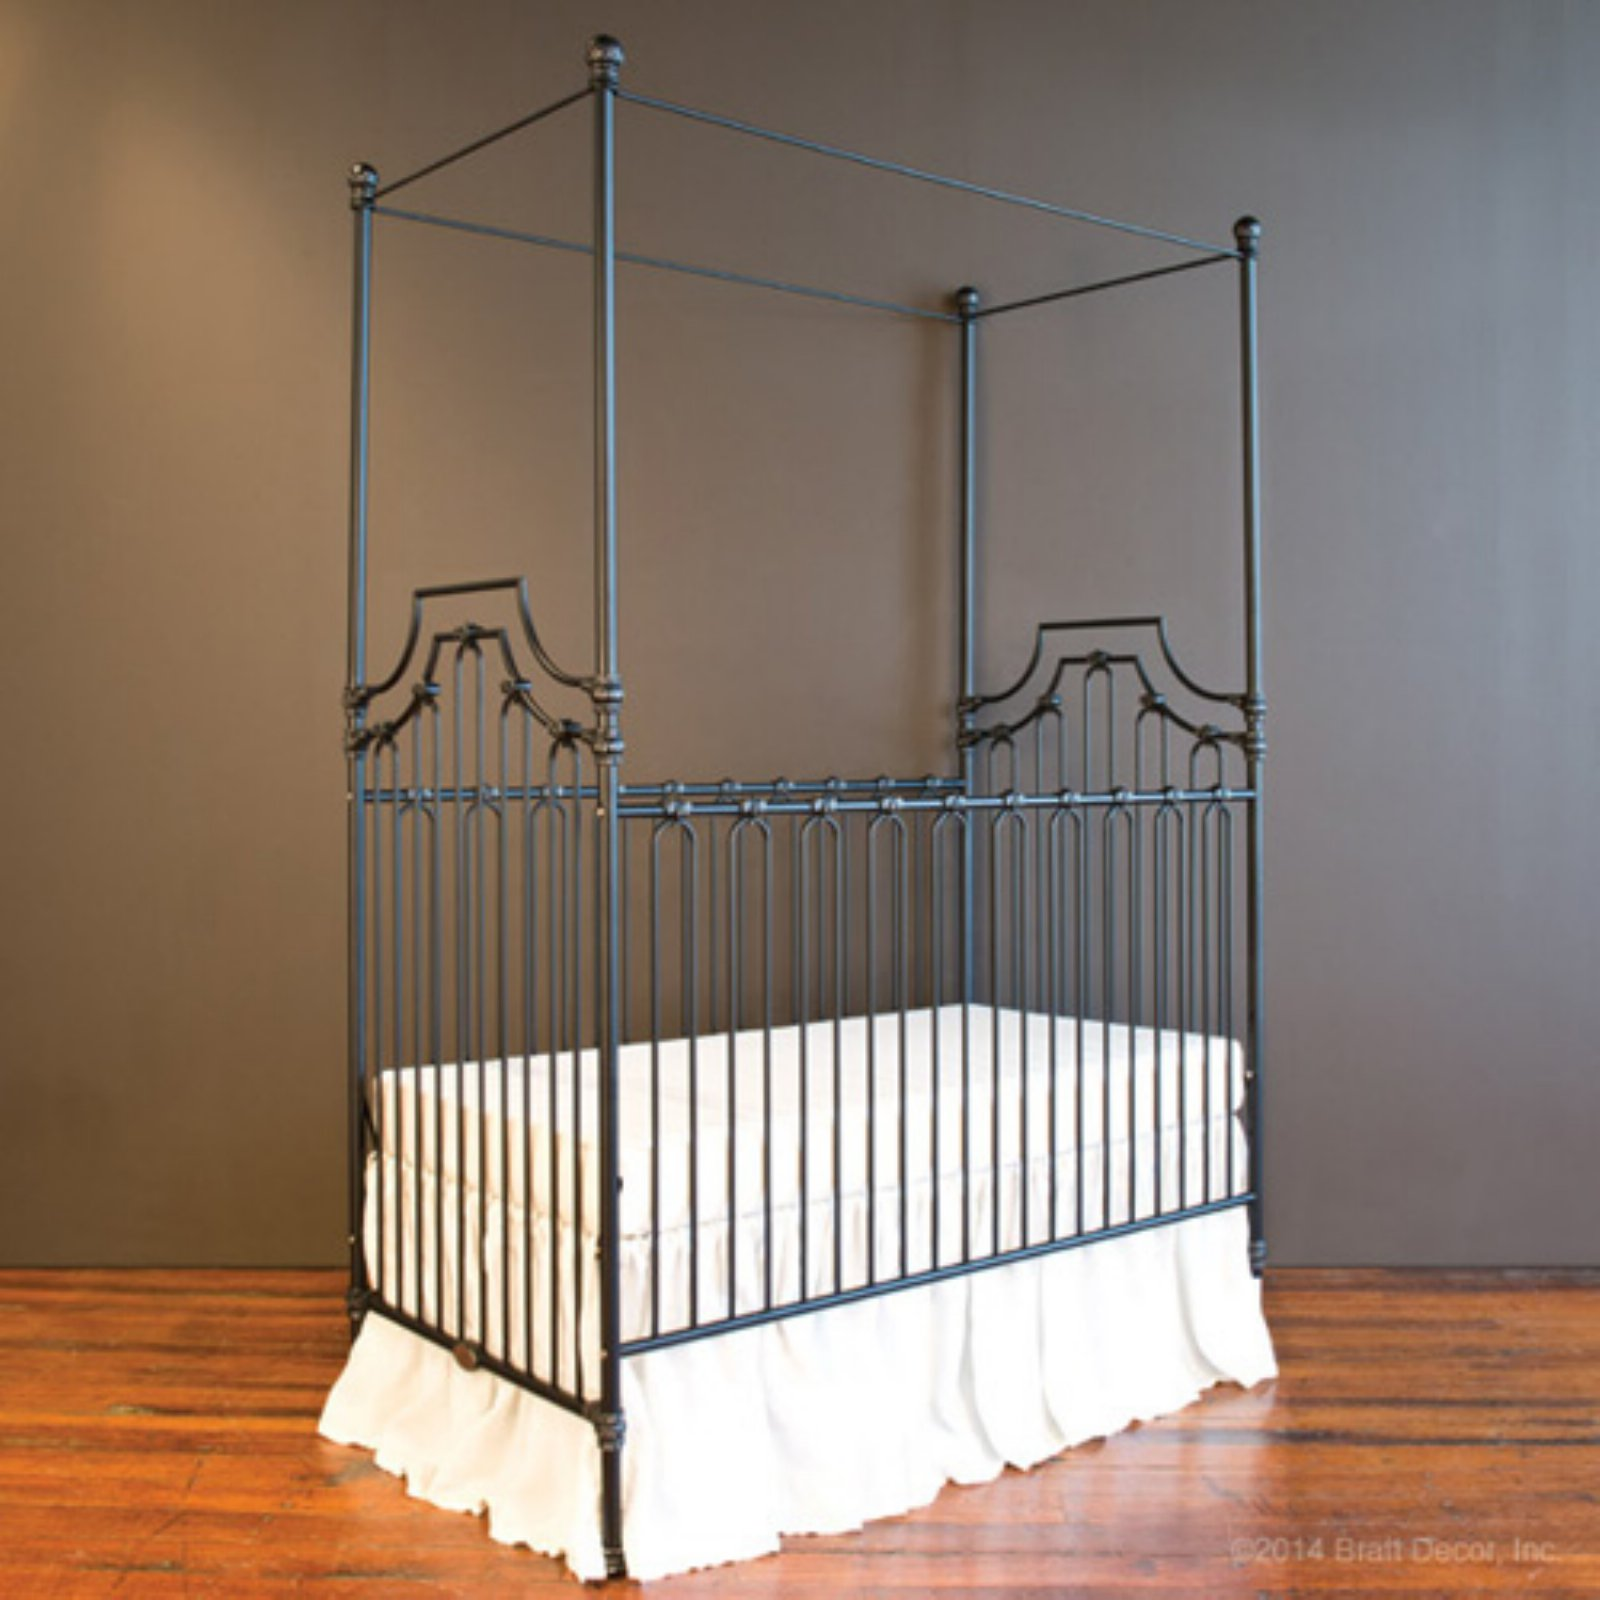 Bratt Decor Parisian 3-in-1 Crib